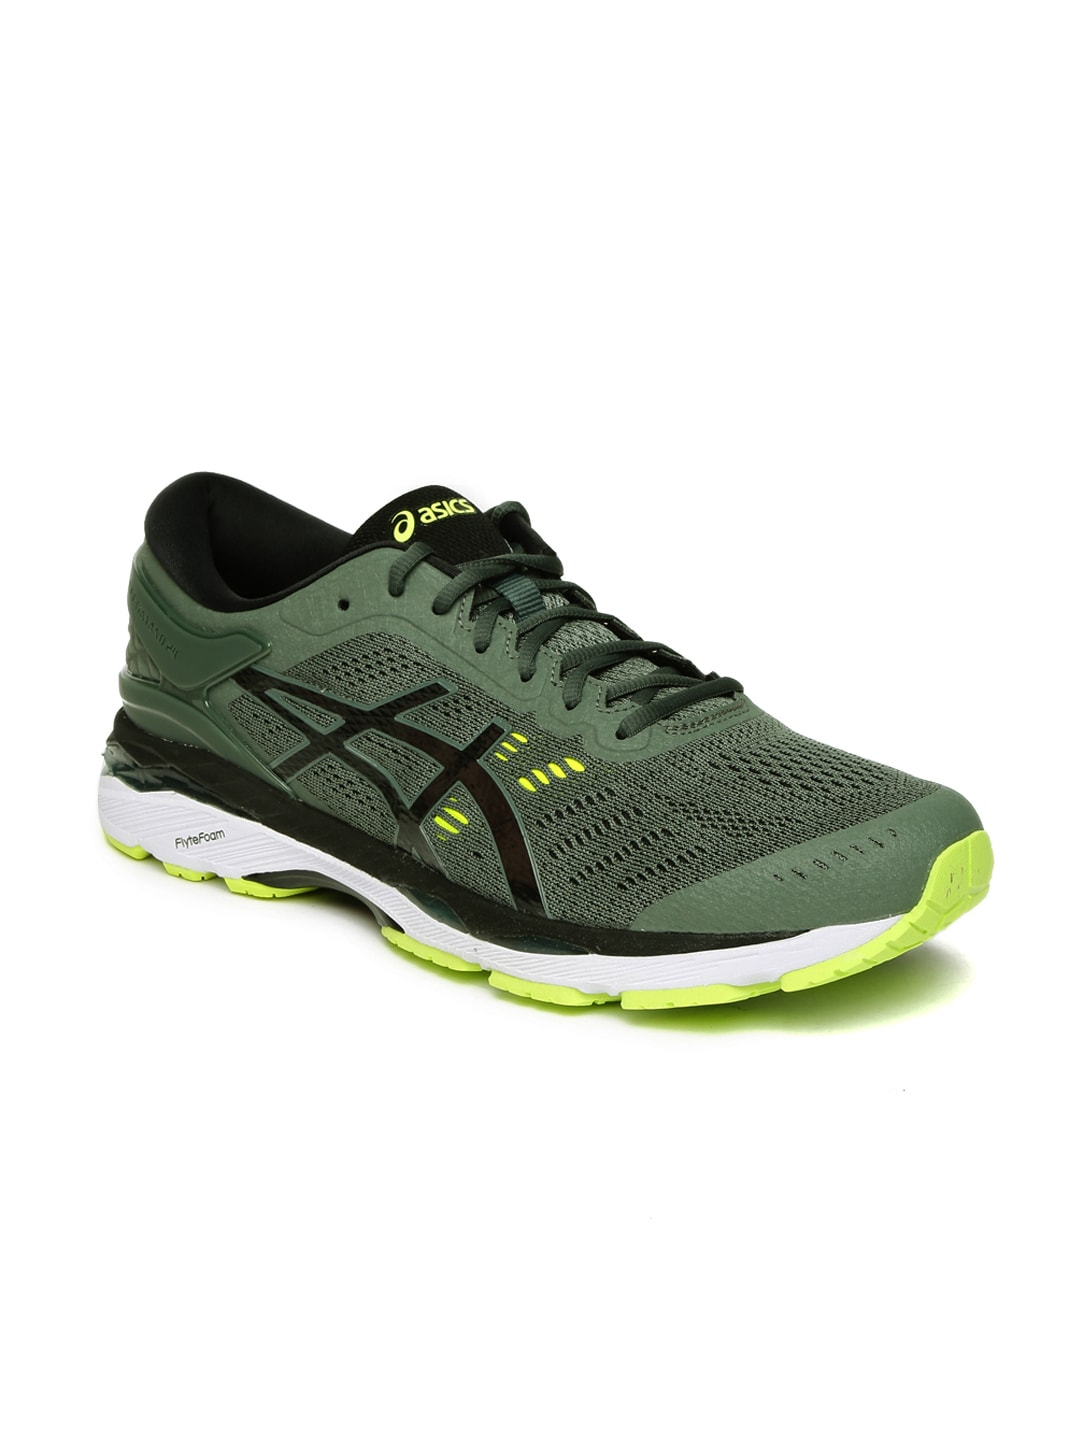 Asics Shoes - Buy Asics Shoes for Men and Women Online - Myn